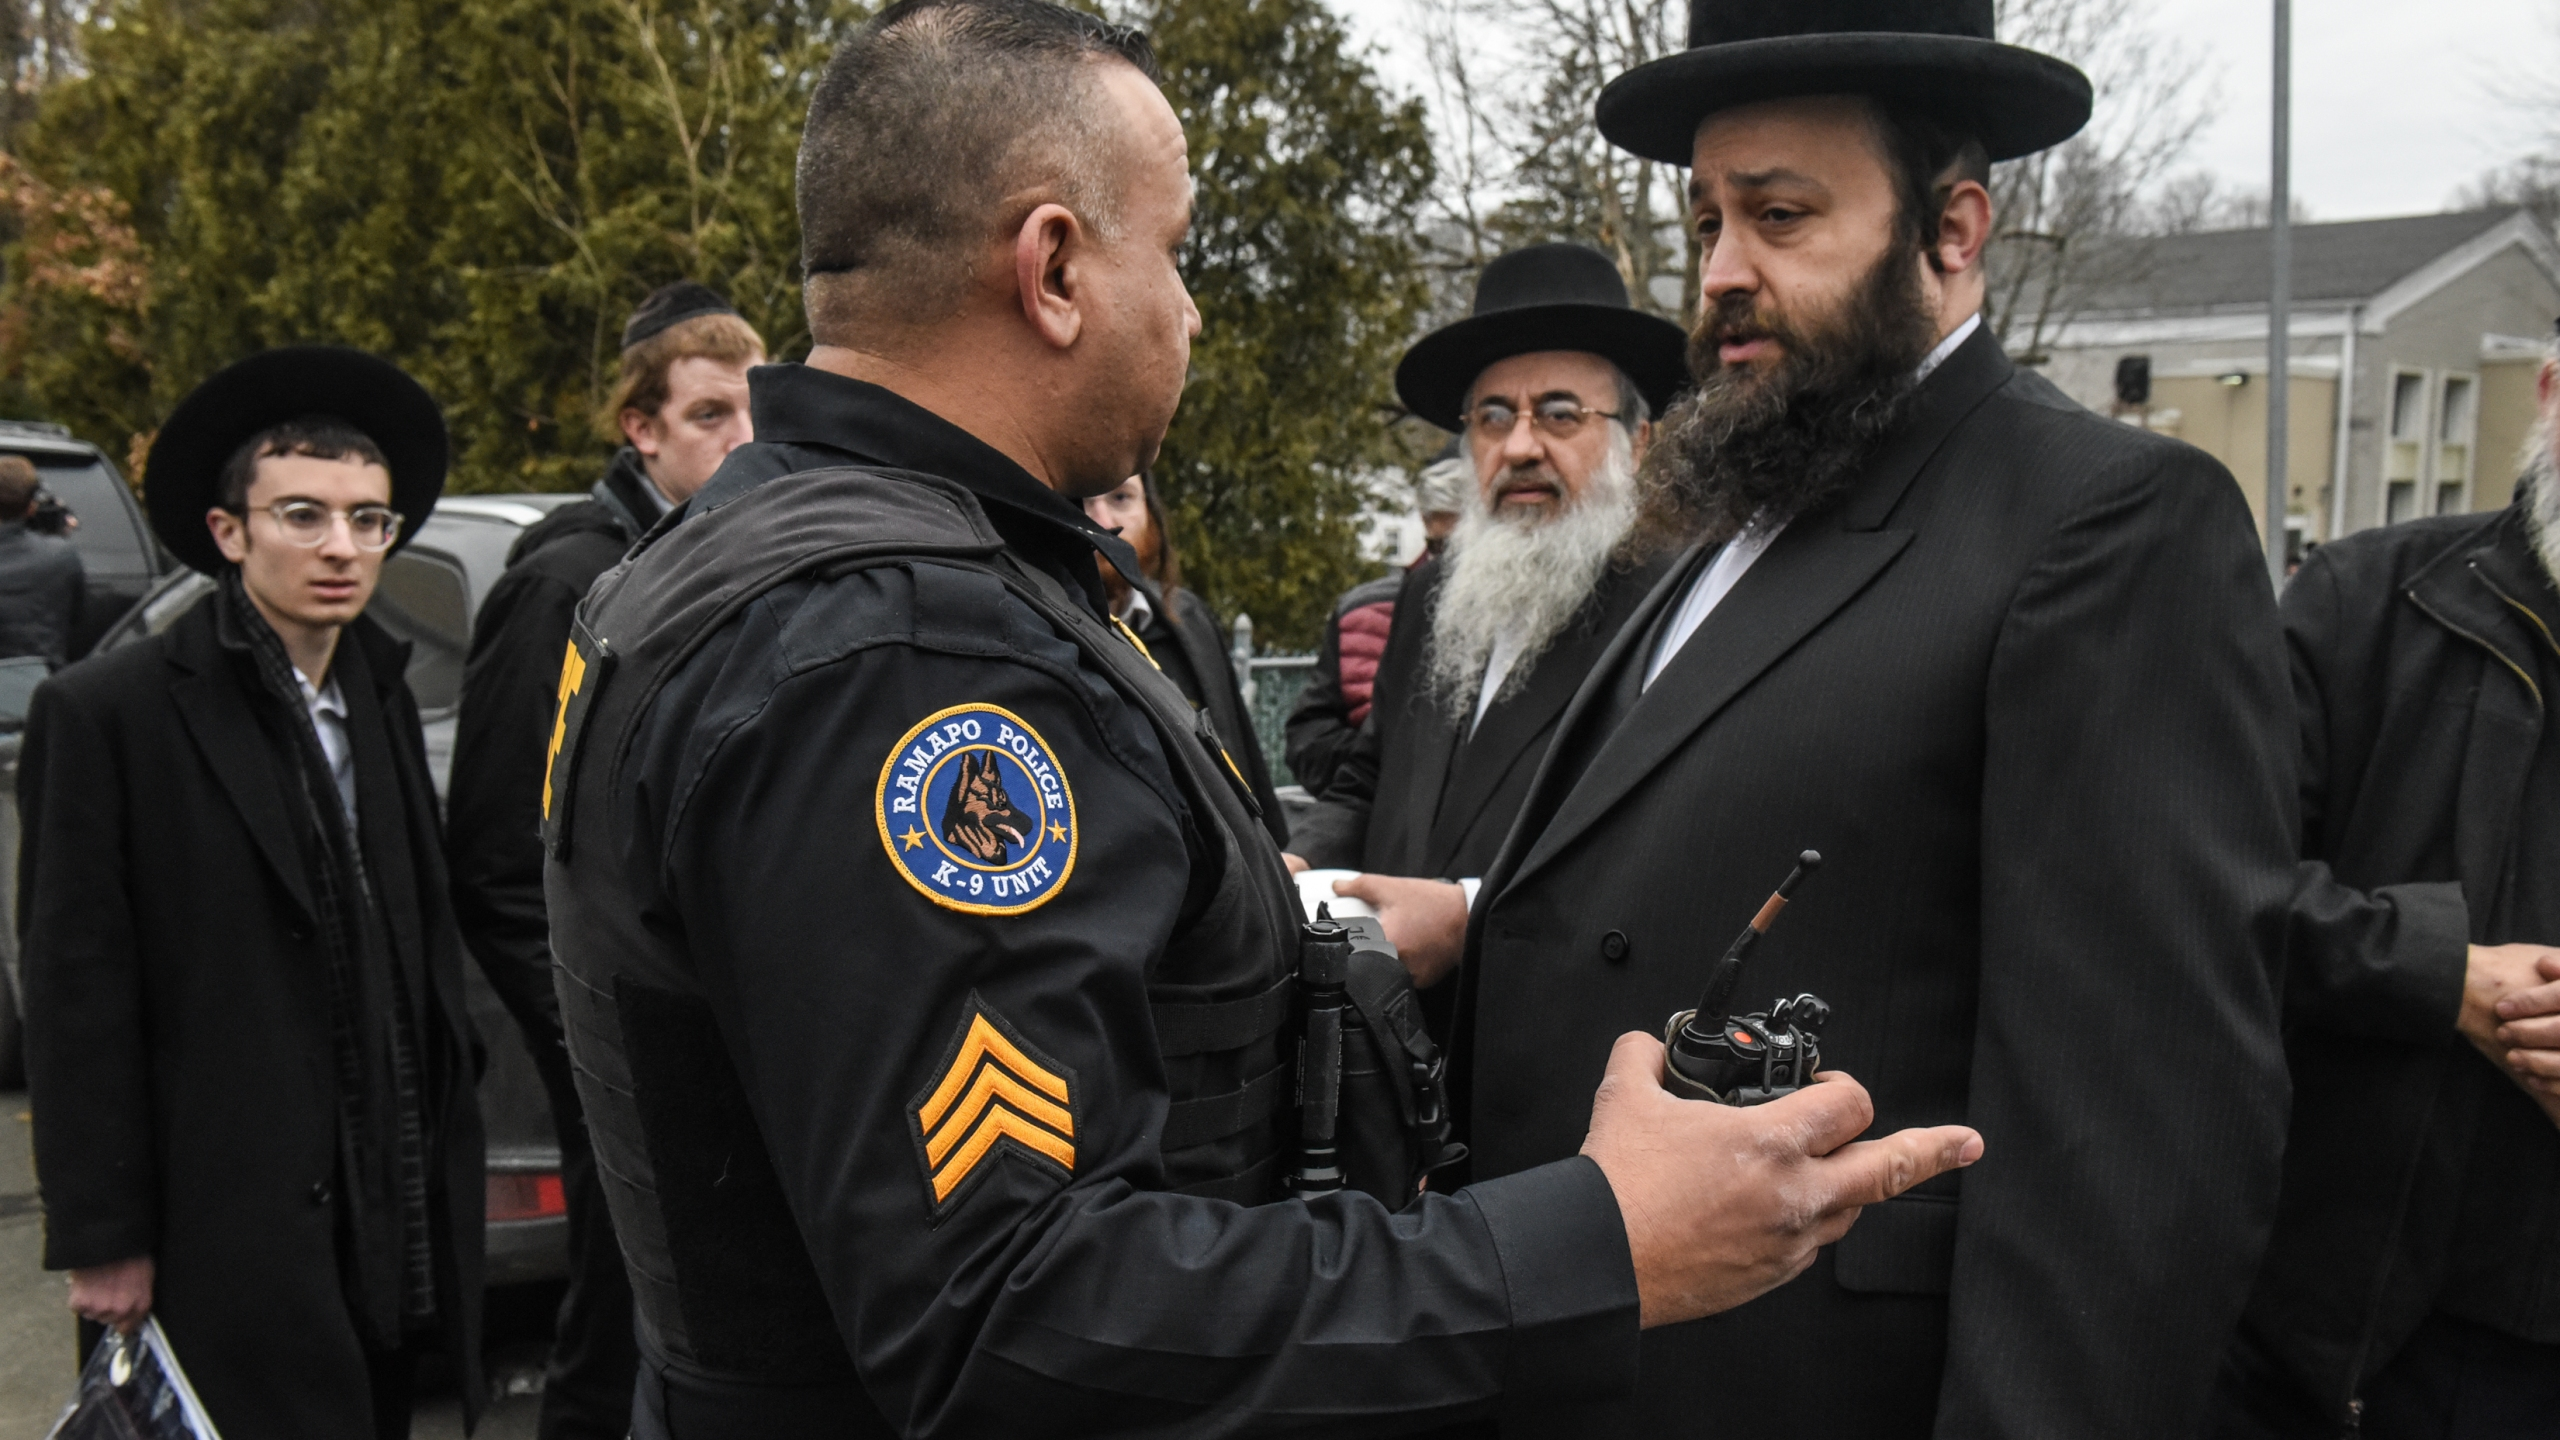 A Ramapo police officer stands guard in front of the house of Rabbi Chaim Rottenberg in Monsey, New York, on Dec. 29, 2019, after five people were injured in a knife attack. (Stephanie Keith / Getty Images)